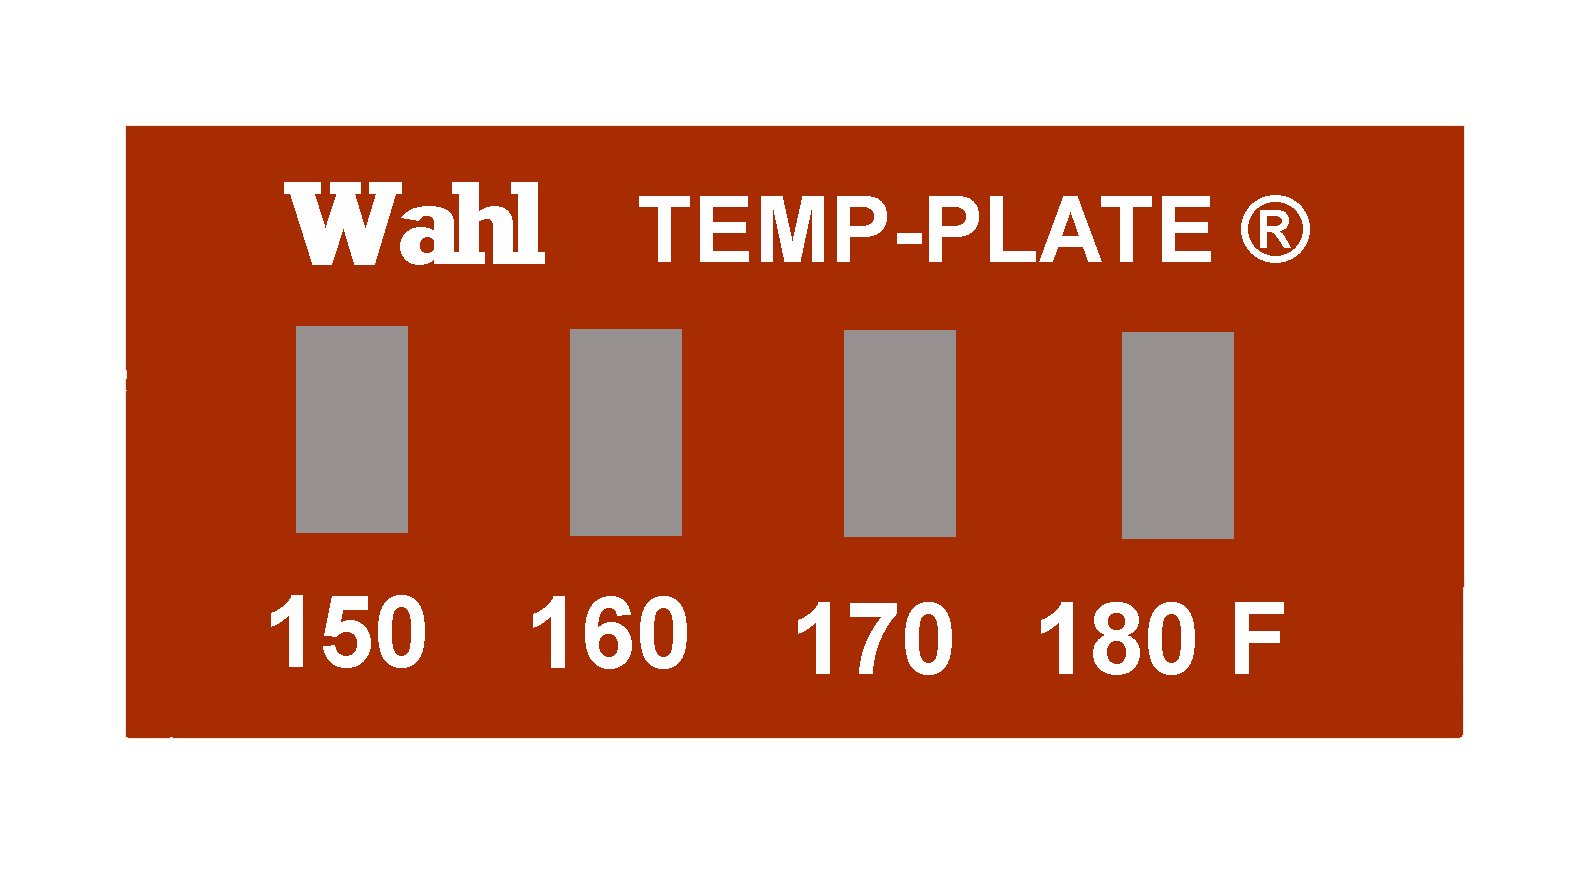 Wahl 101-4-150F Mylar Mini Four-Position Temp-Plate, 150-160-170-180 Degrees F Positions, 0.82'' Width x 0.32'' Height (Box of 10 labels) by Wahl Instruments